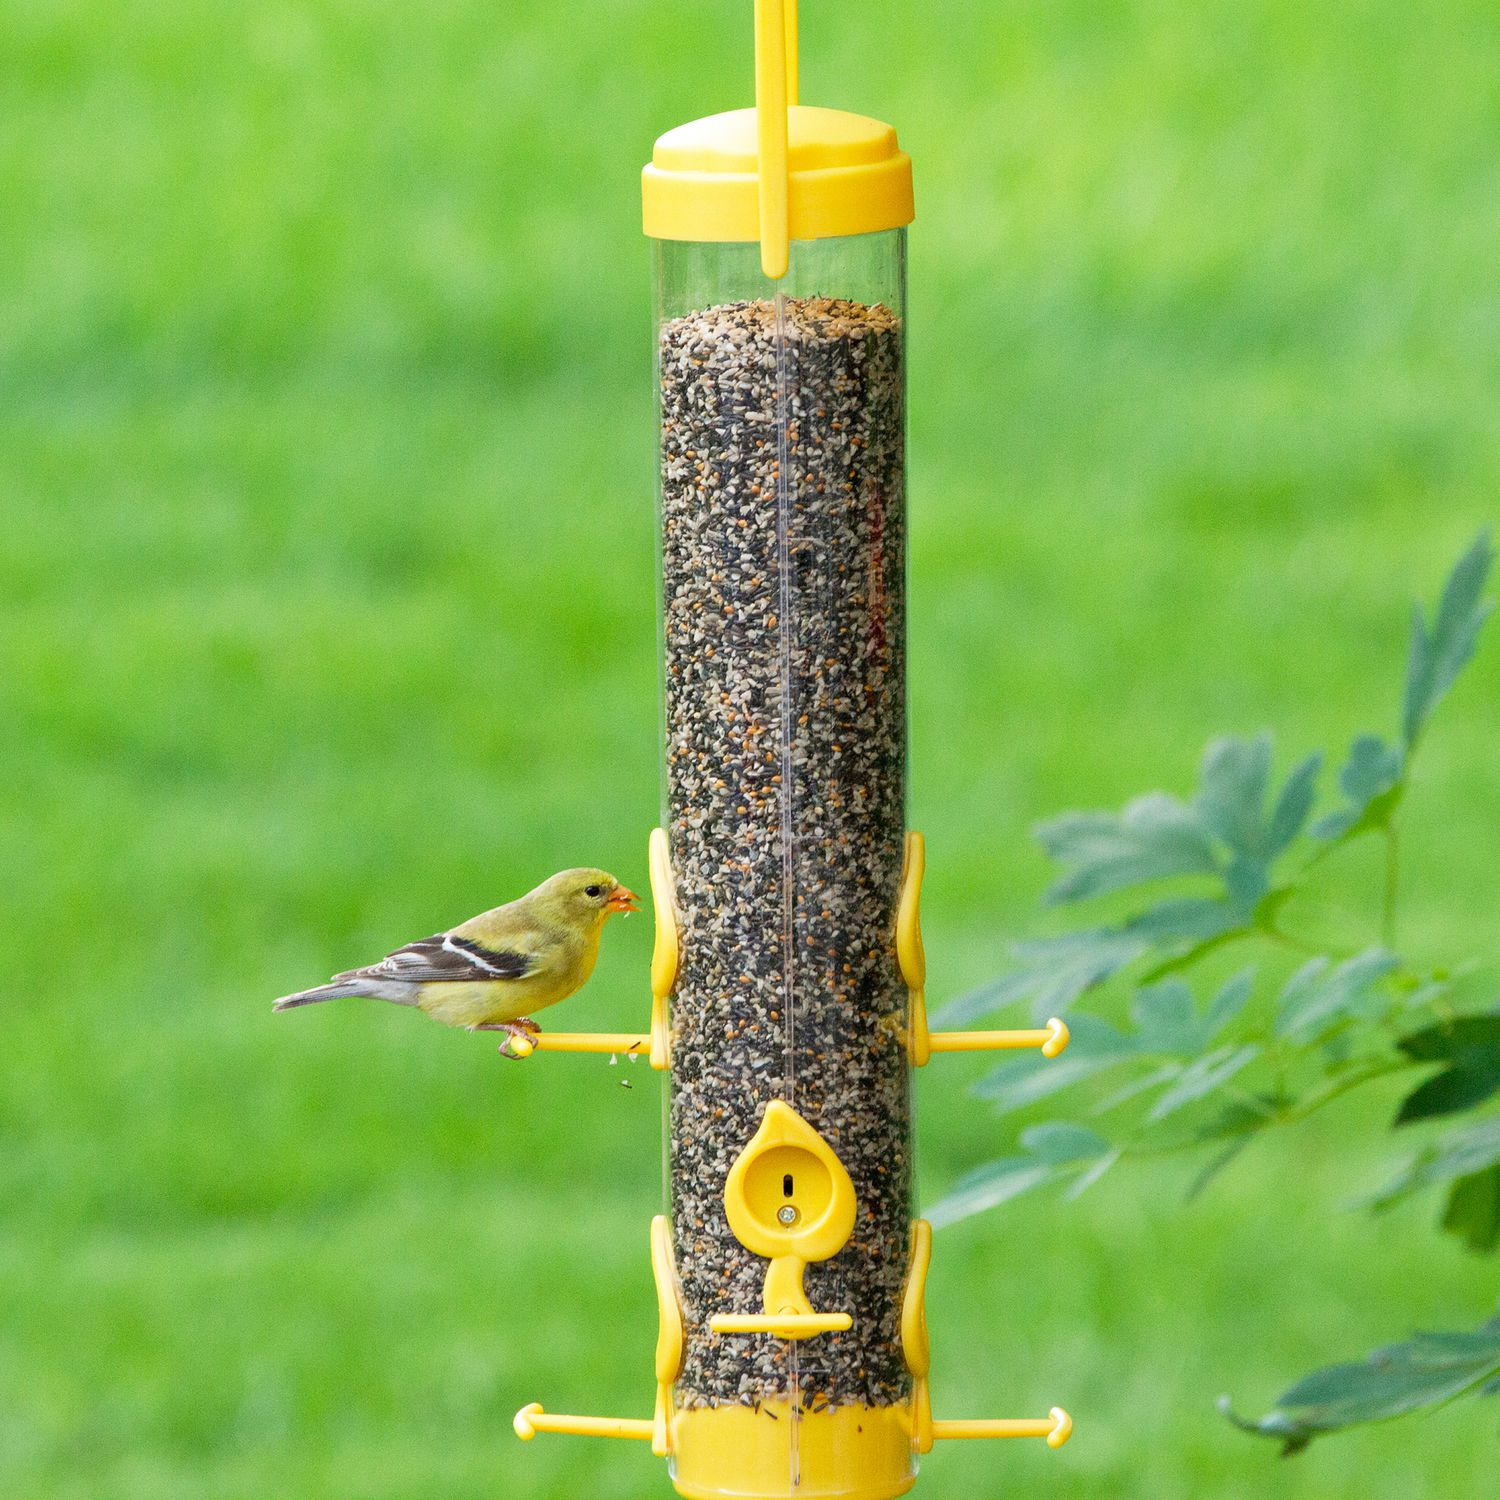 sunflower all feeders bird peters finch by finches feeder purpose wild